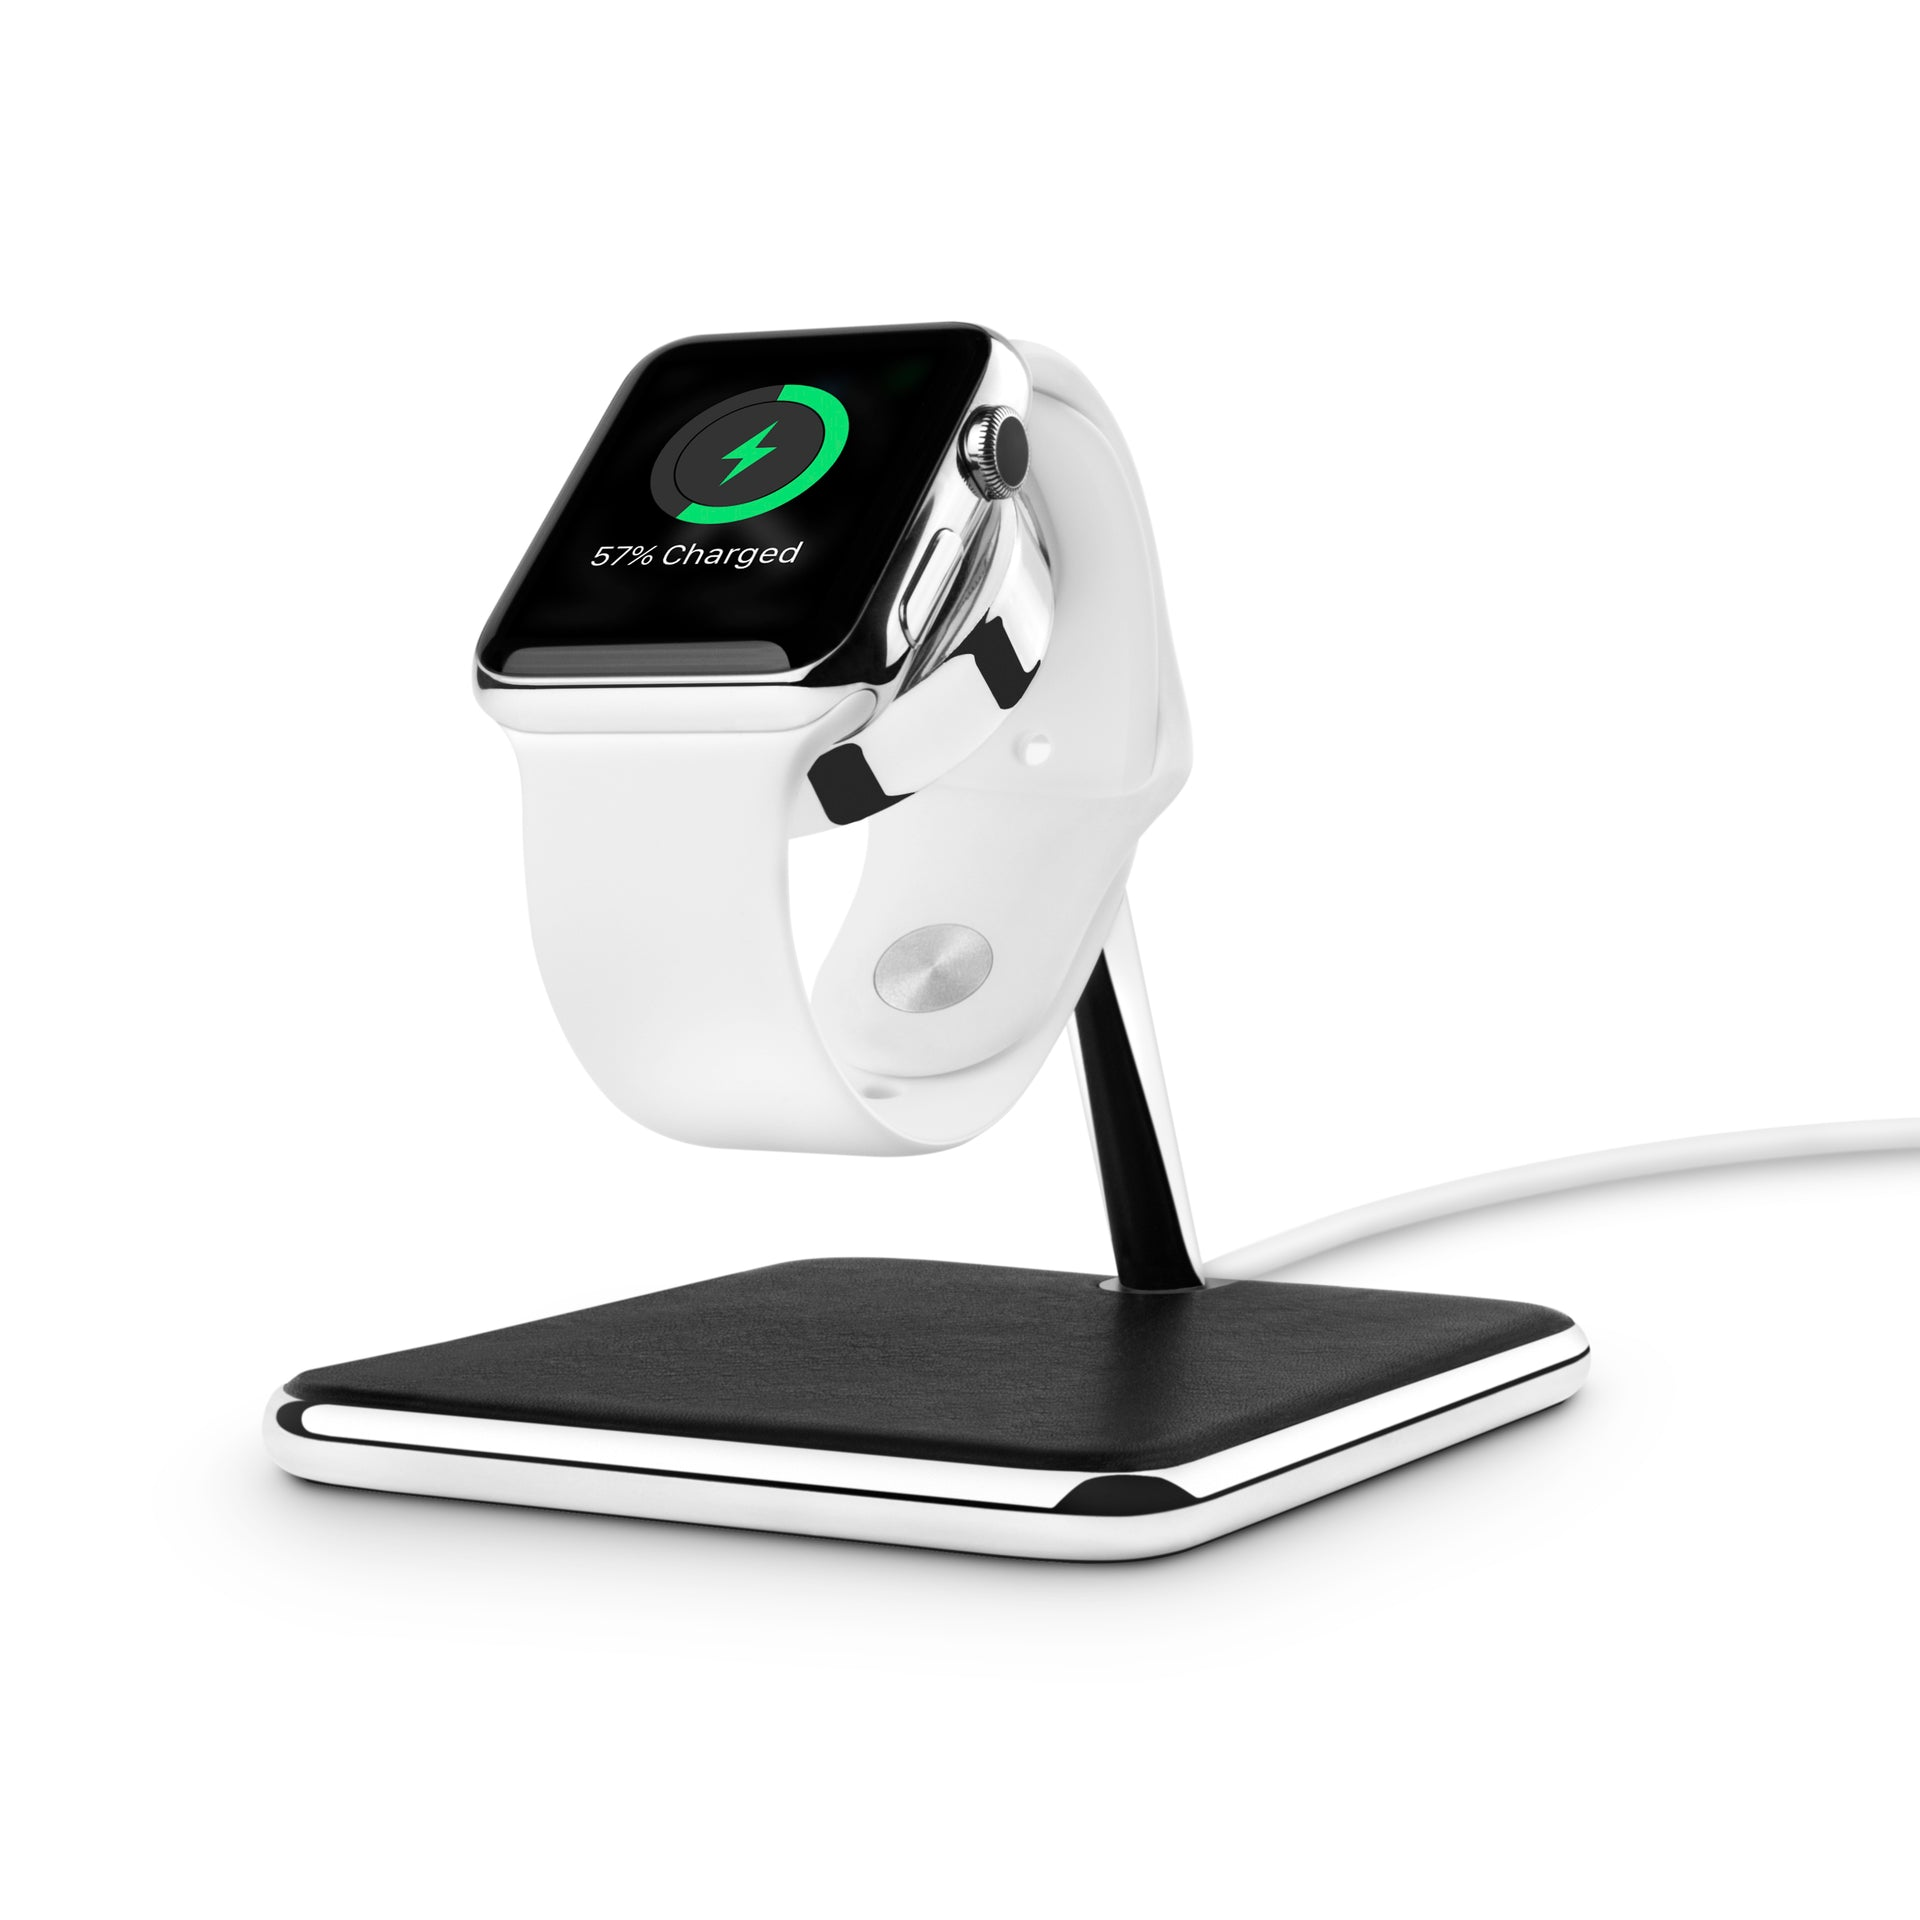 Meet Forté for Apple Watch.